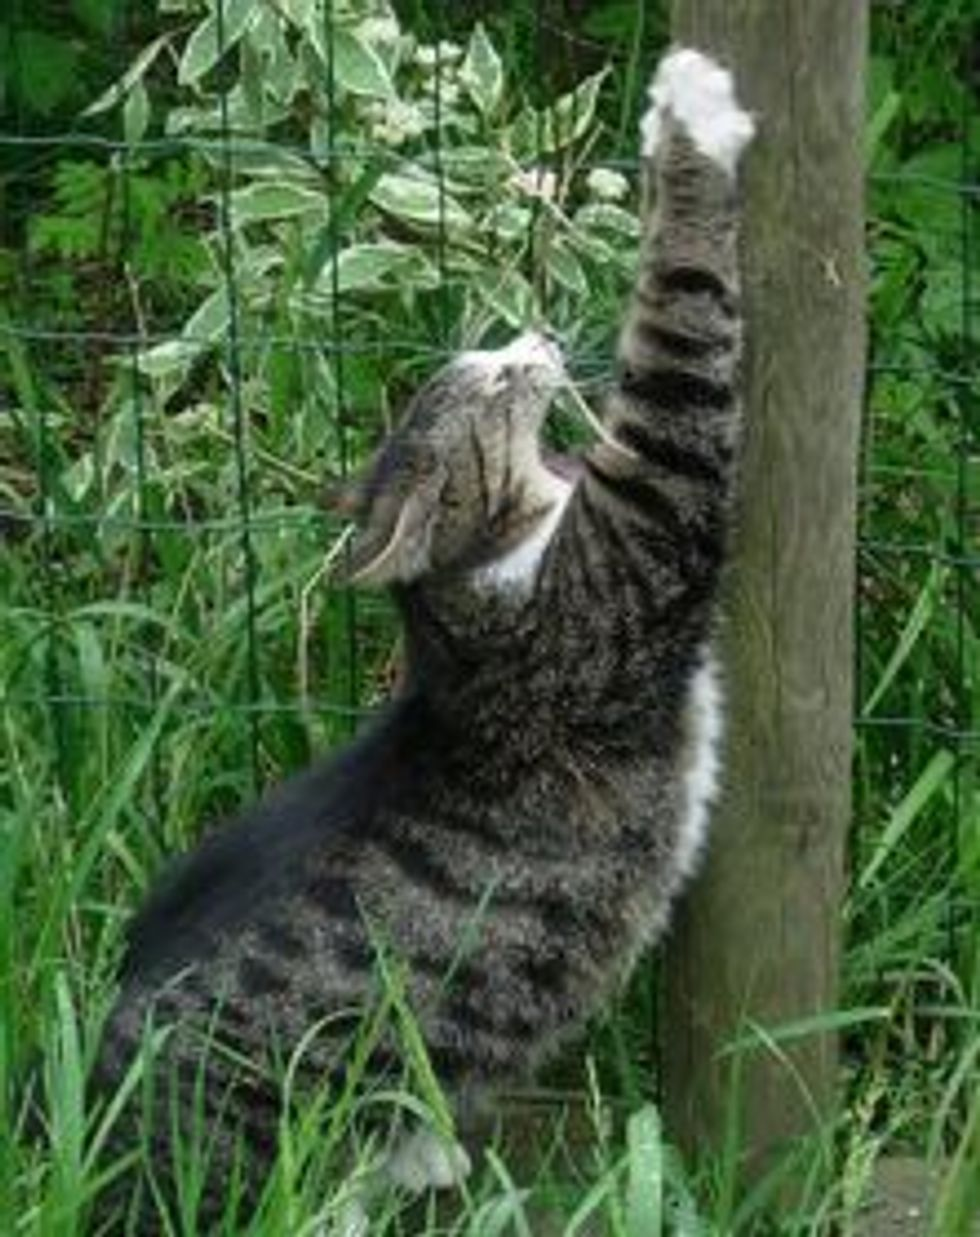 Why do Cats Scratch so Much?